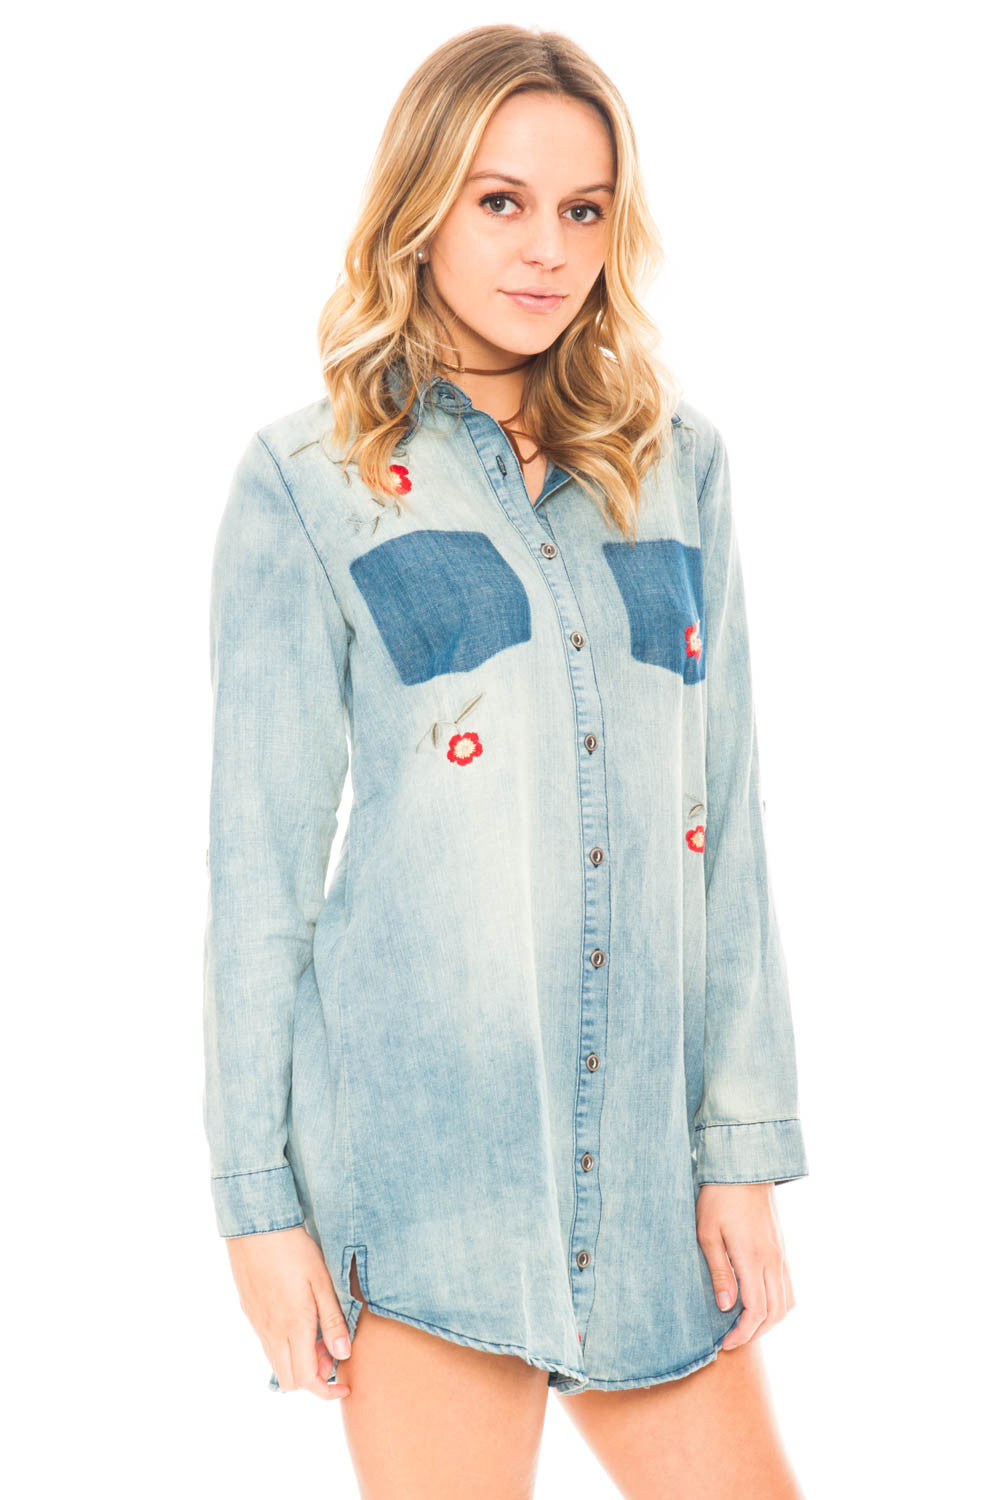 Dress - Embroidered Denim Button Up Dress by En Creme